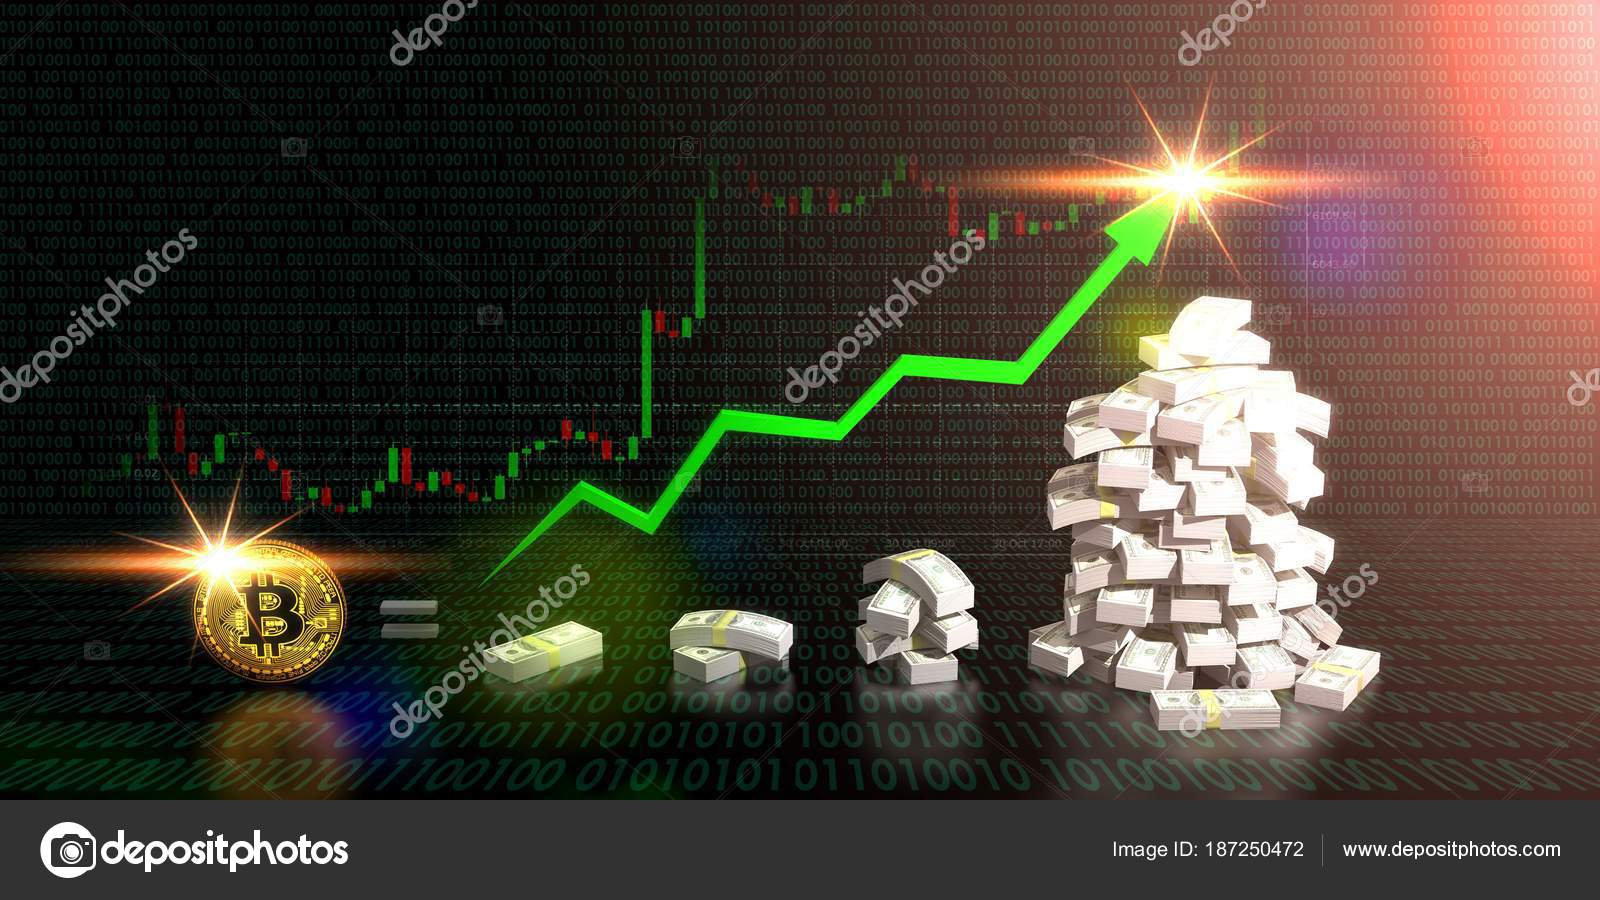 Forex Trading Online FX Markets Currencies, Spot